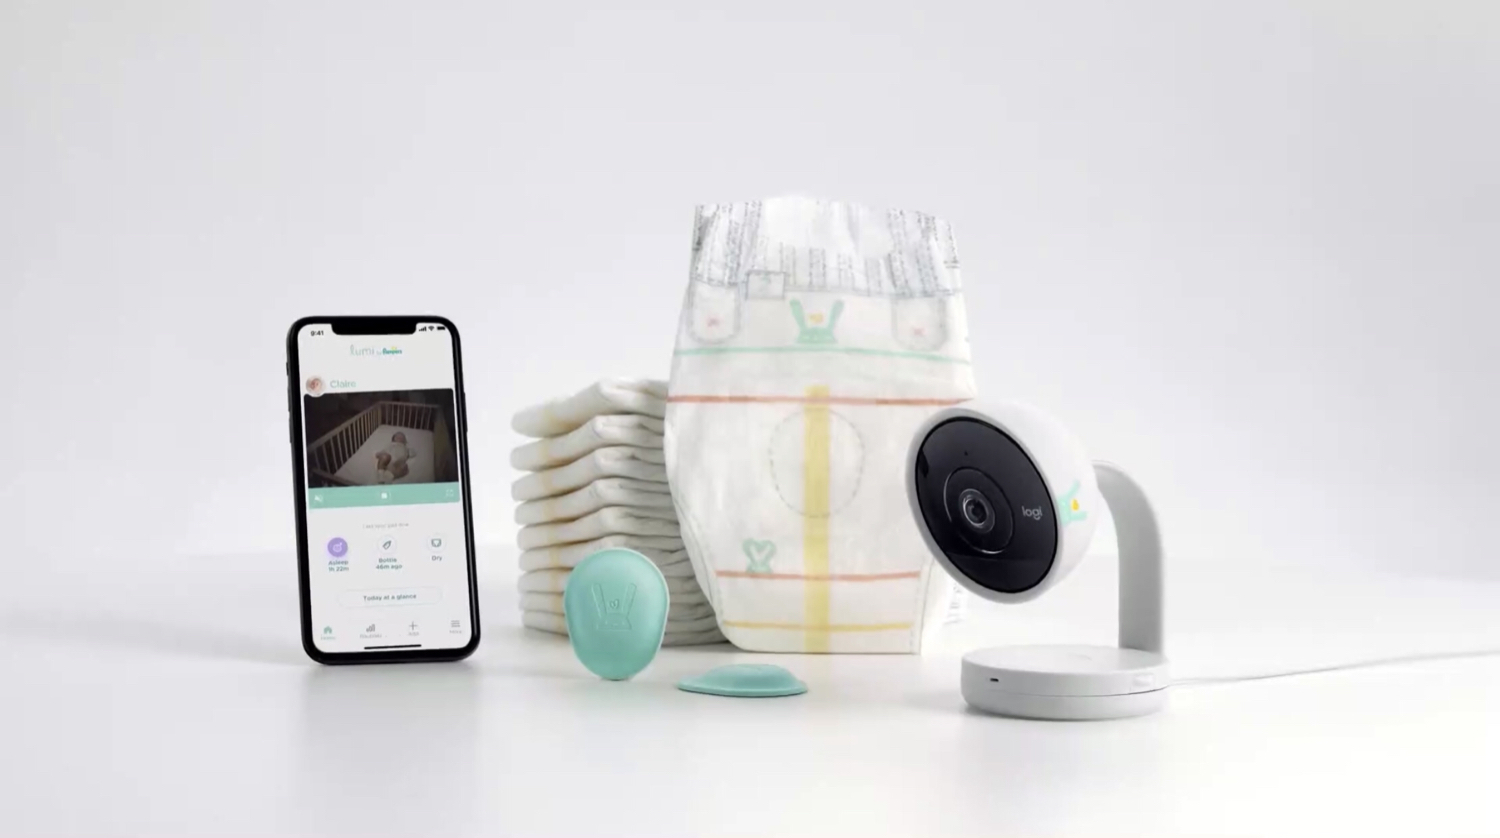 The Lumi by Pampers Connected Care System.